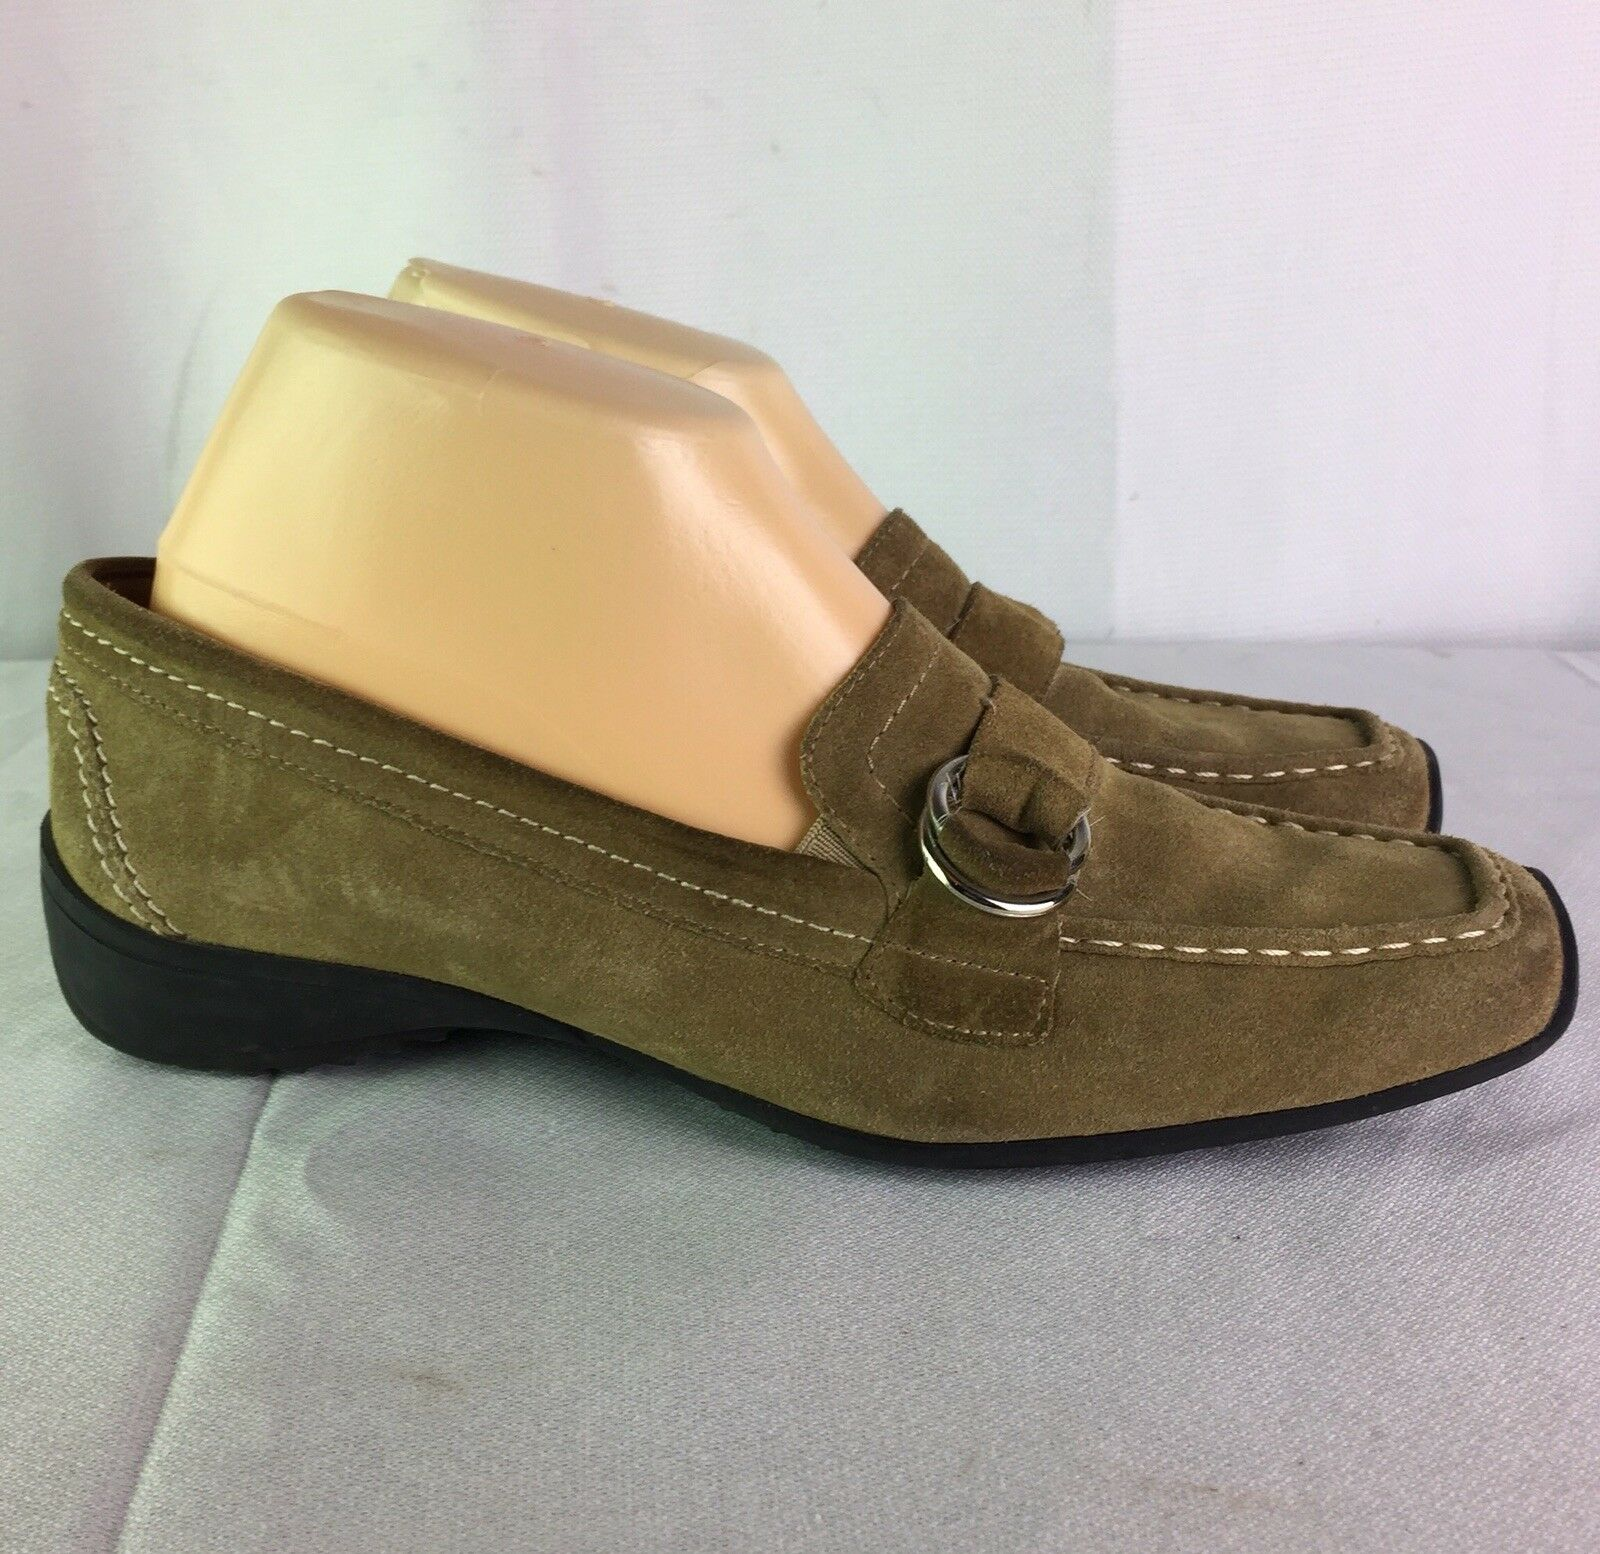 PAUL GREEN Women's Olive Green,Suede,Slip On. Ring Buckled,Driver Loafers SZ 5.5